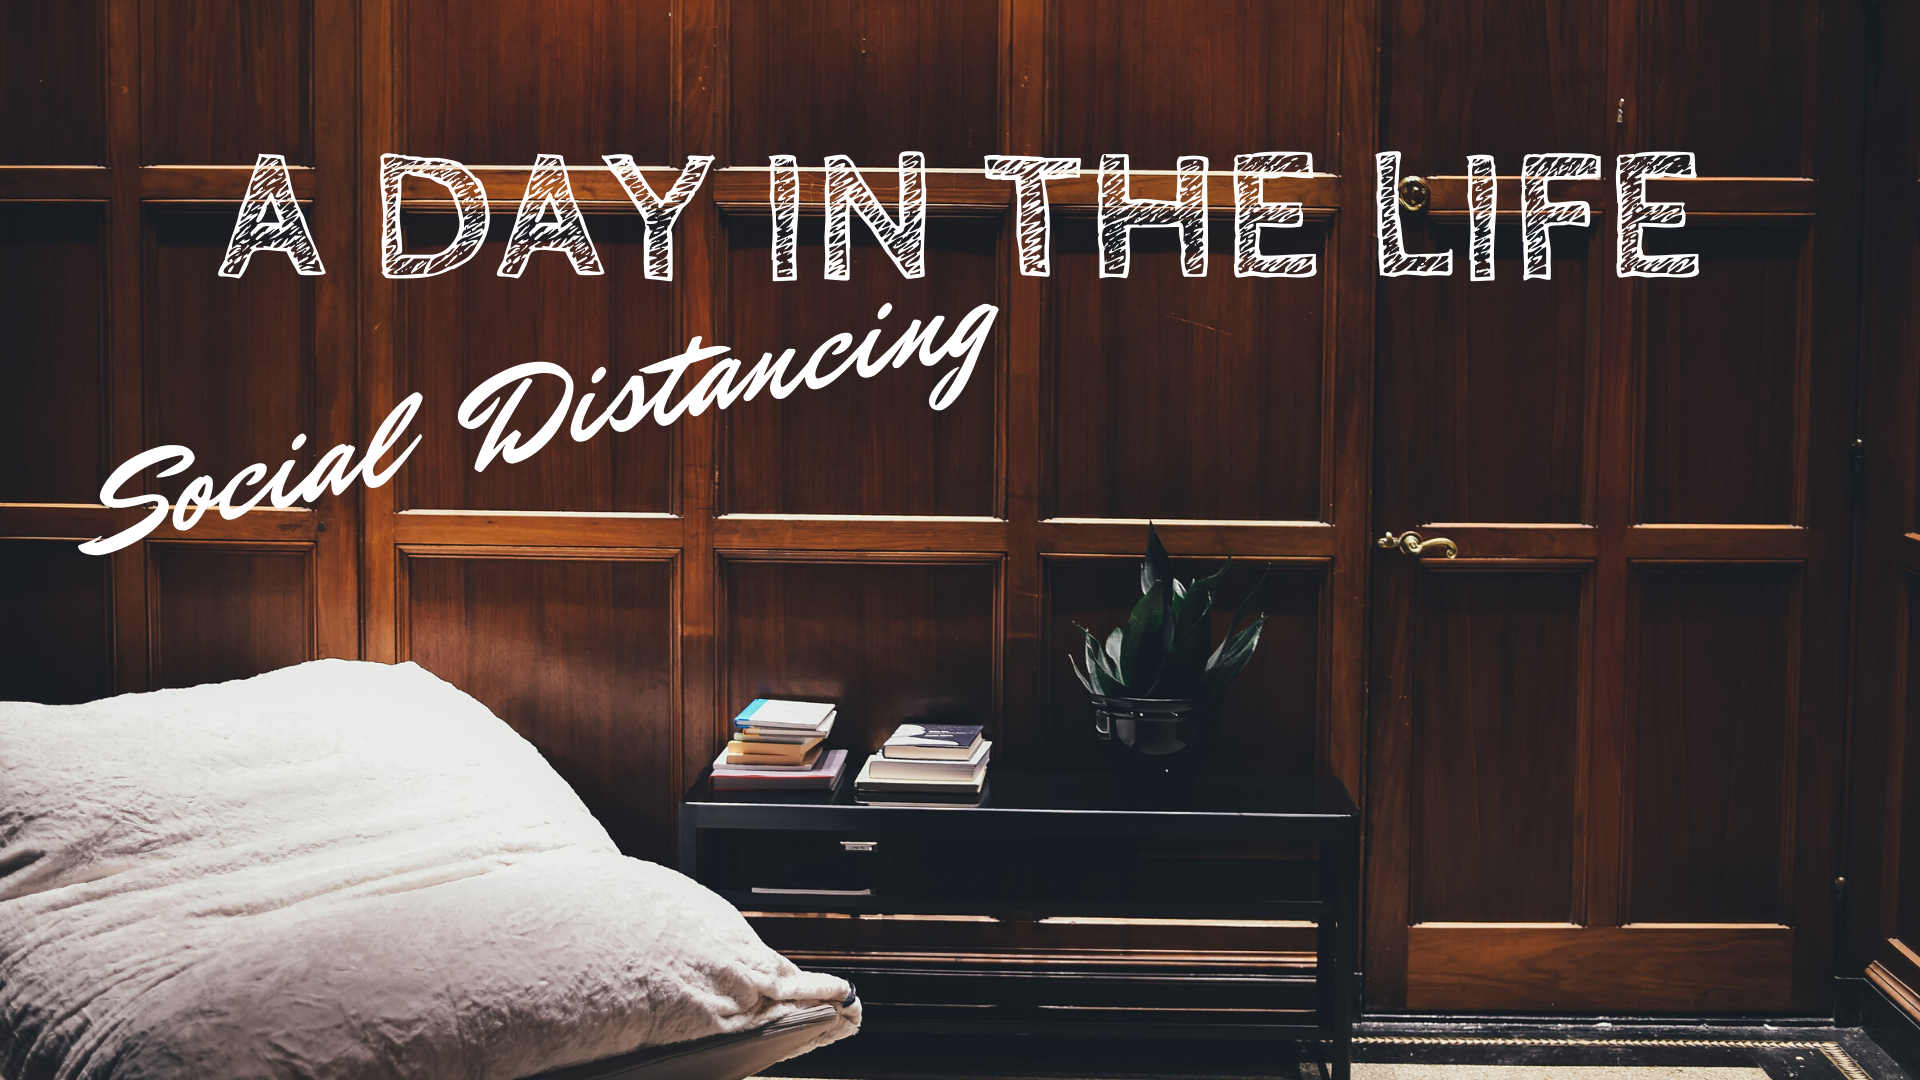 social-distancing-day-dtj-cover-photo